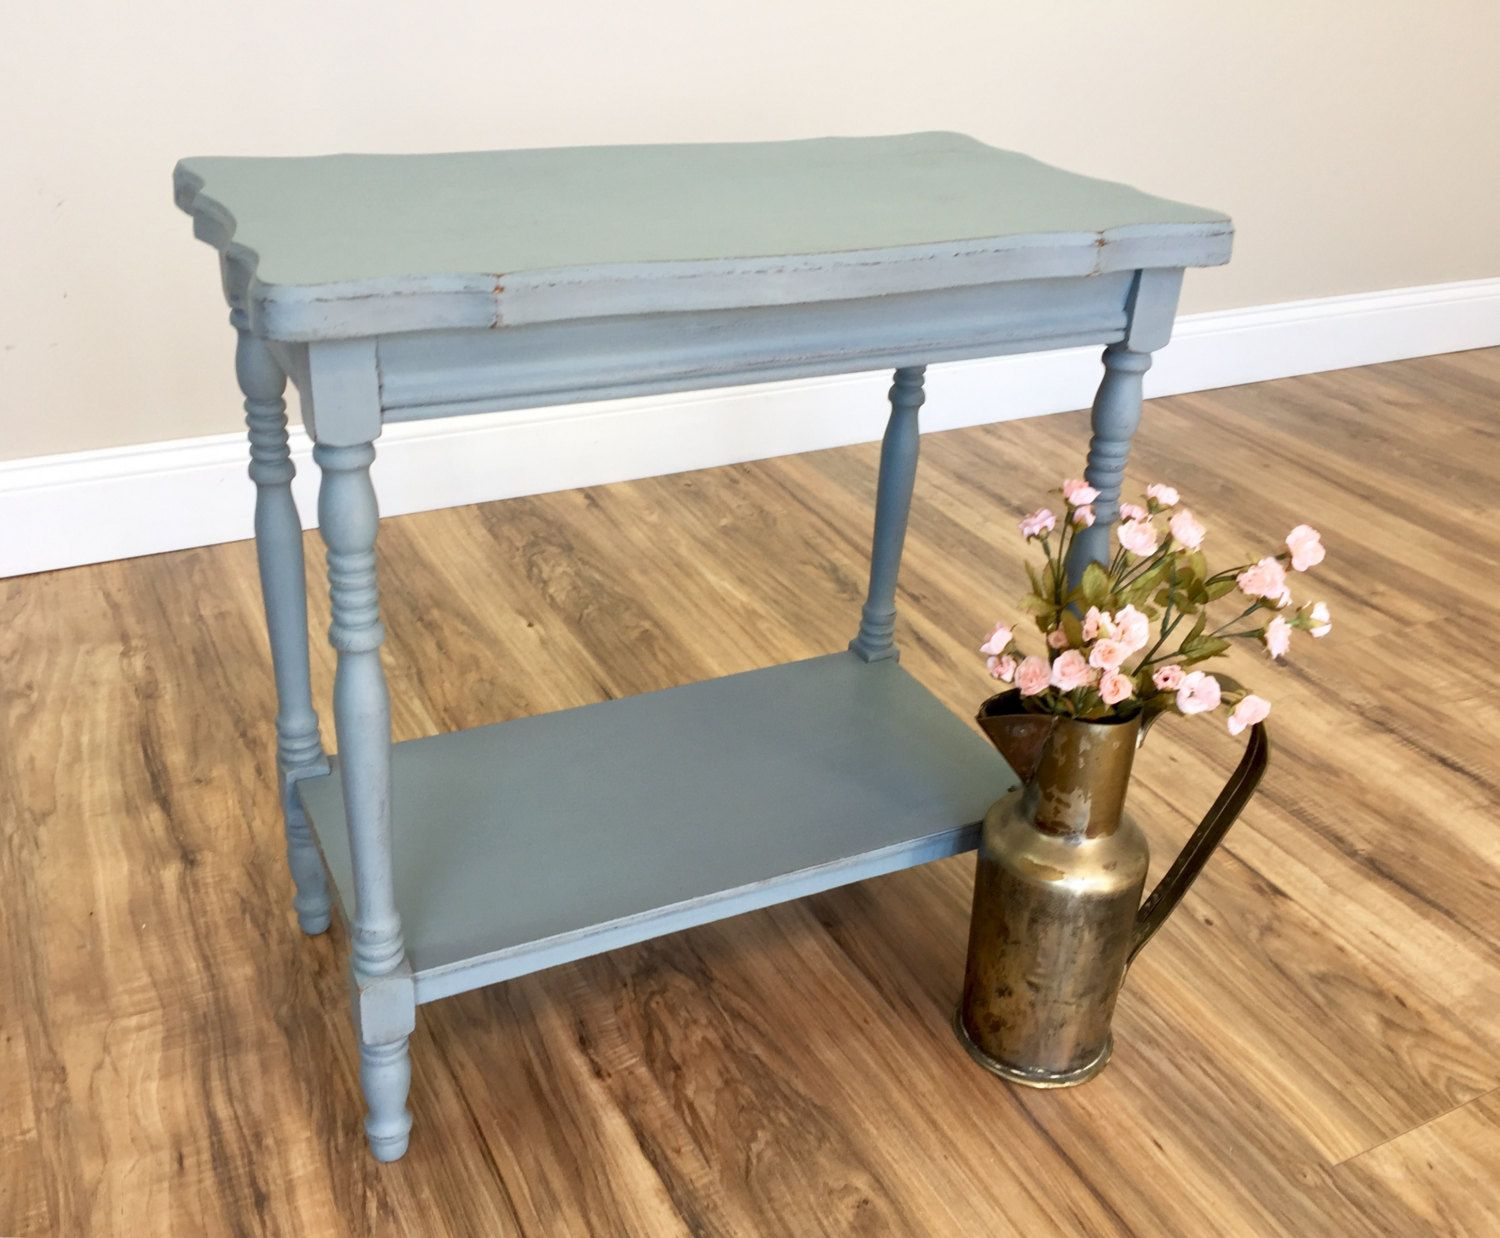 vintage end table blue side distressed furniture sofa small accent tables living room leather lounge chair circle dining set square metal desk legs attic heirlooms ikea tall glass